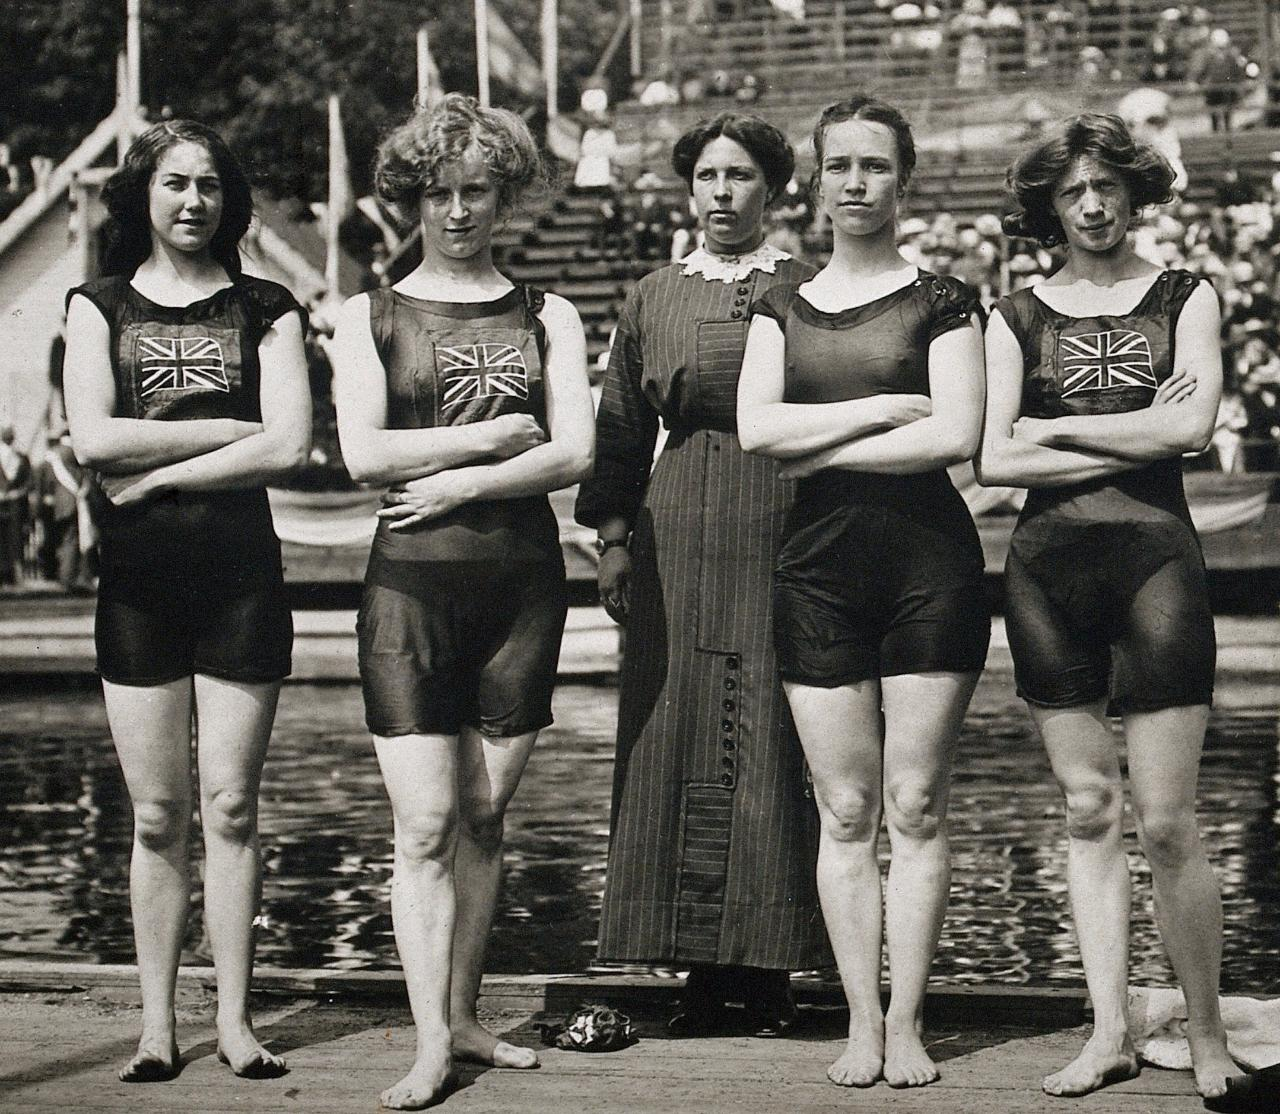 womens olympic swimming team 1912